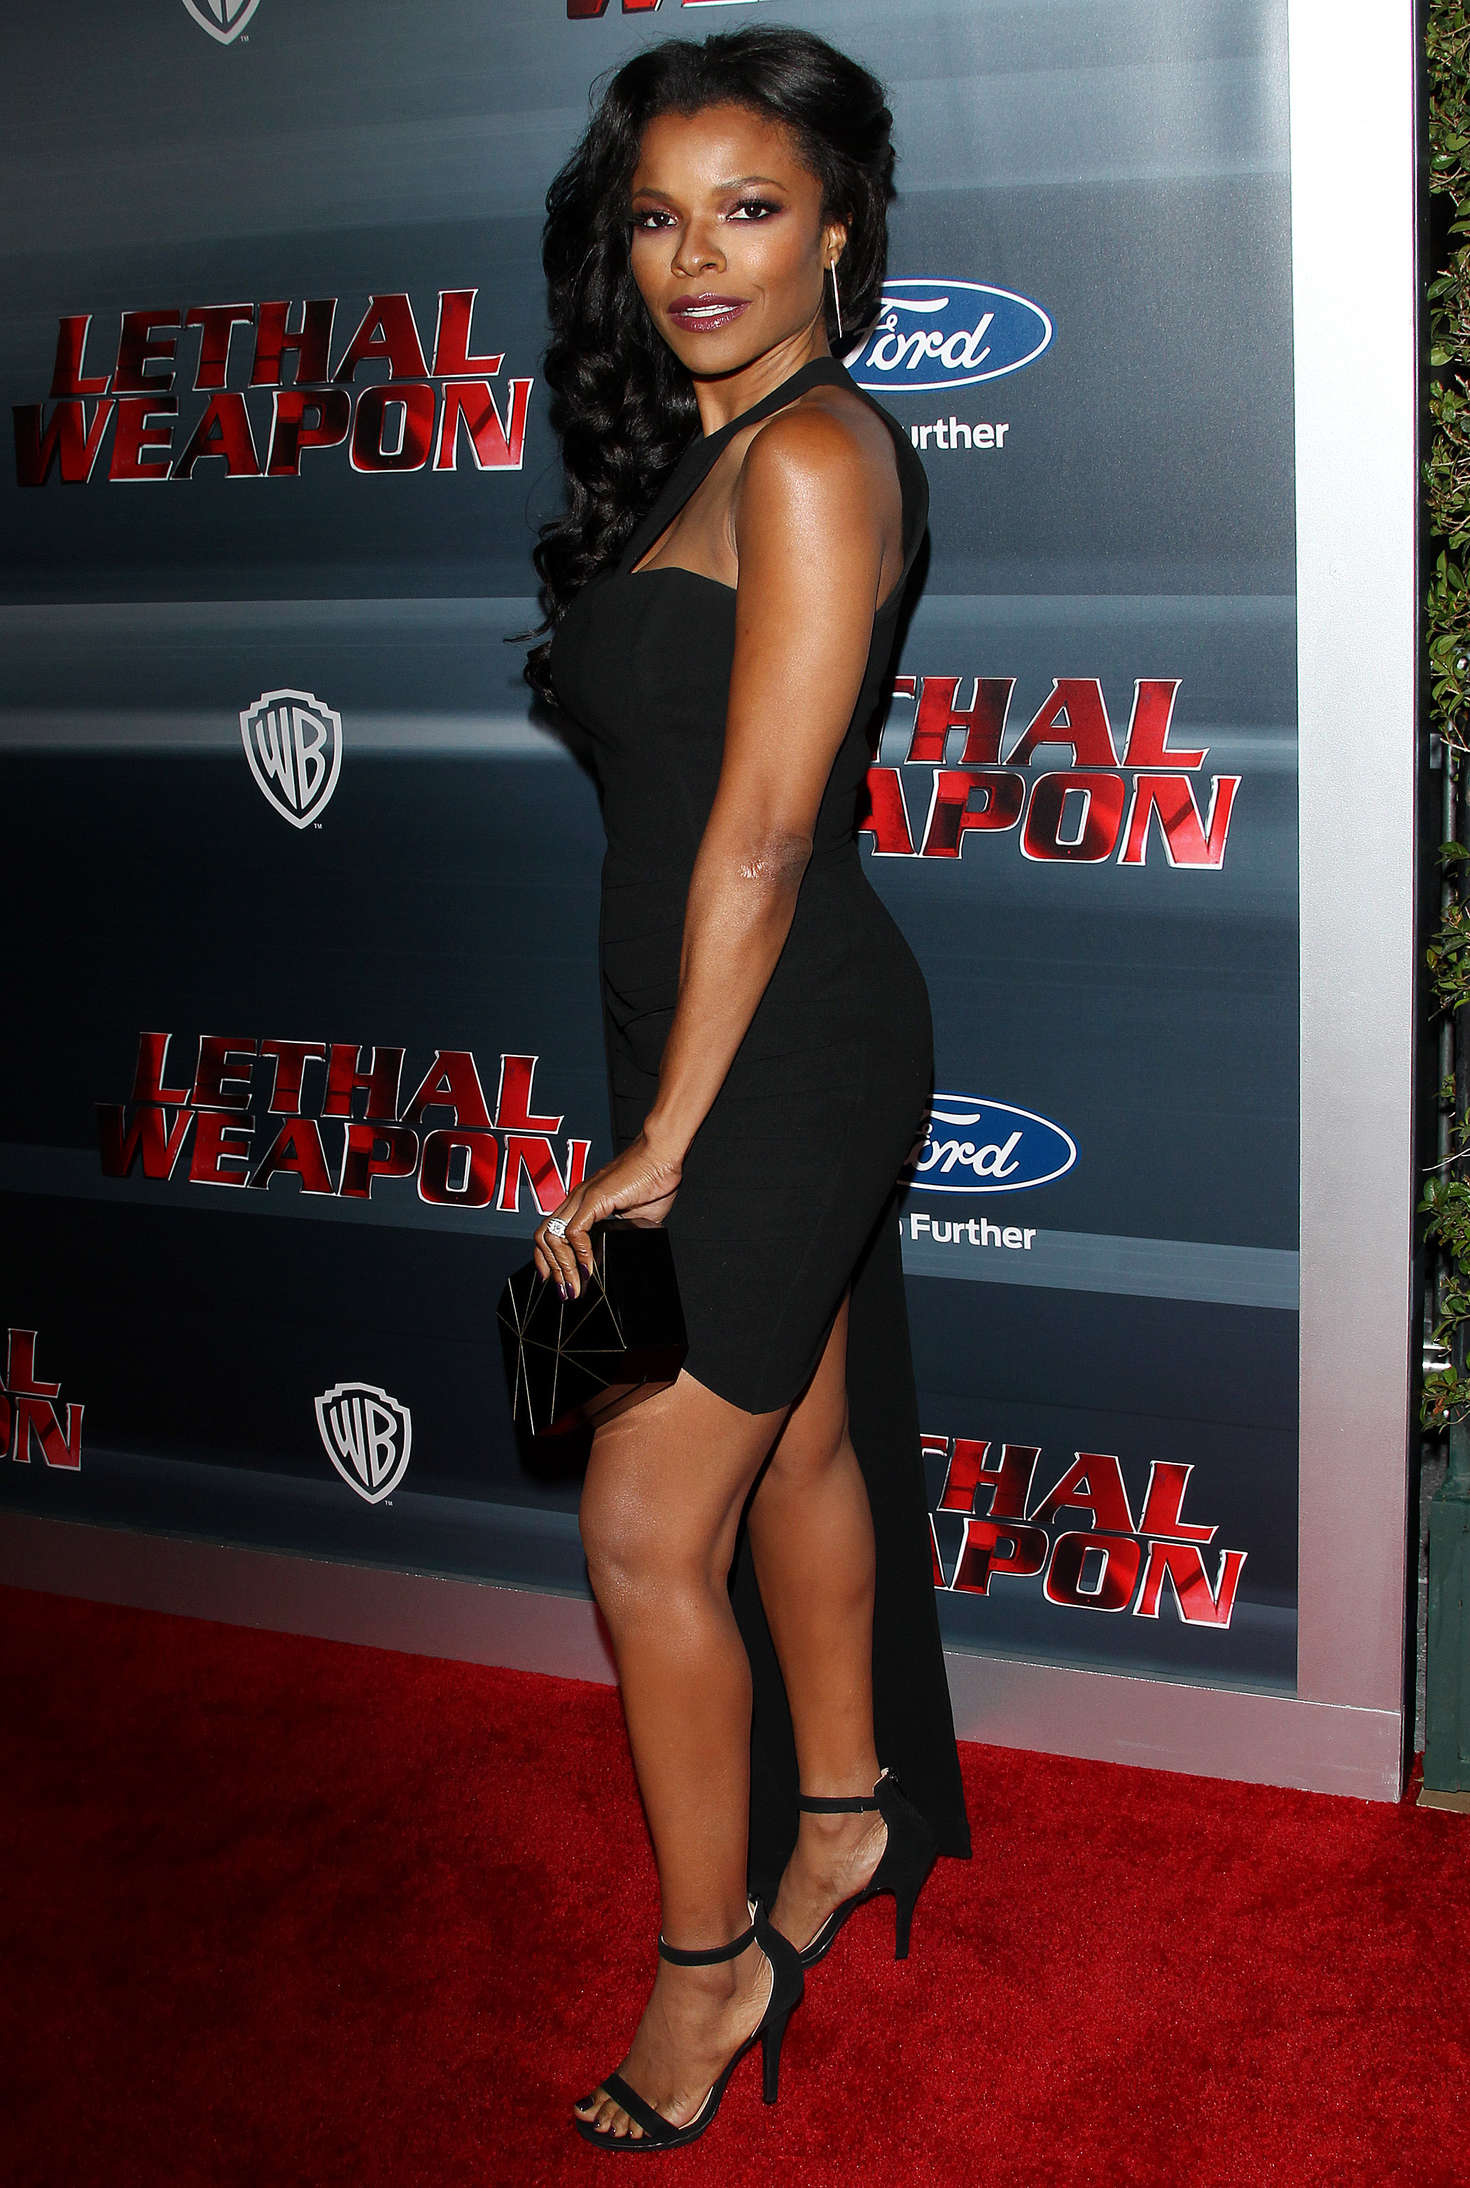 23+ Best Pictures of Keesha Sharp - Swanty Gallery